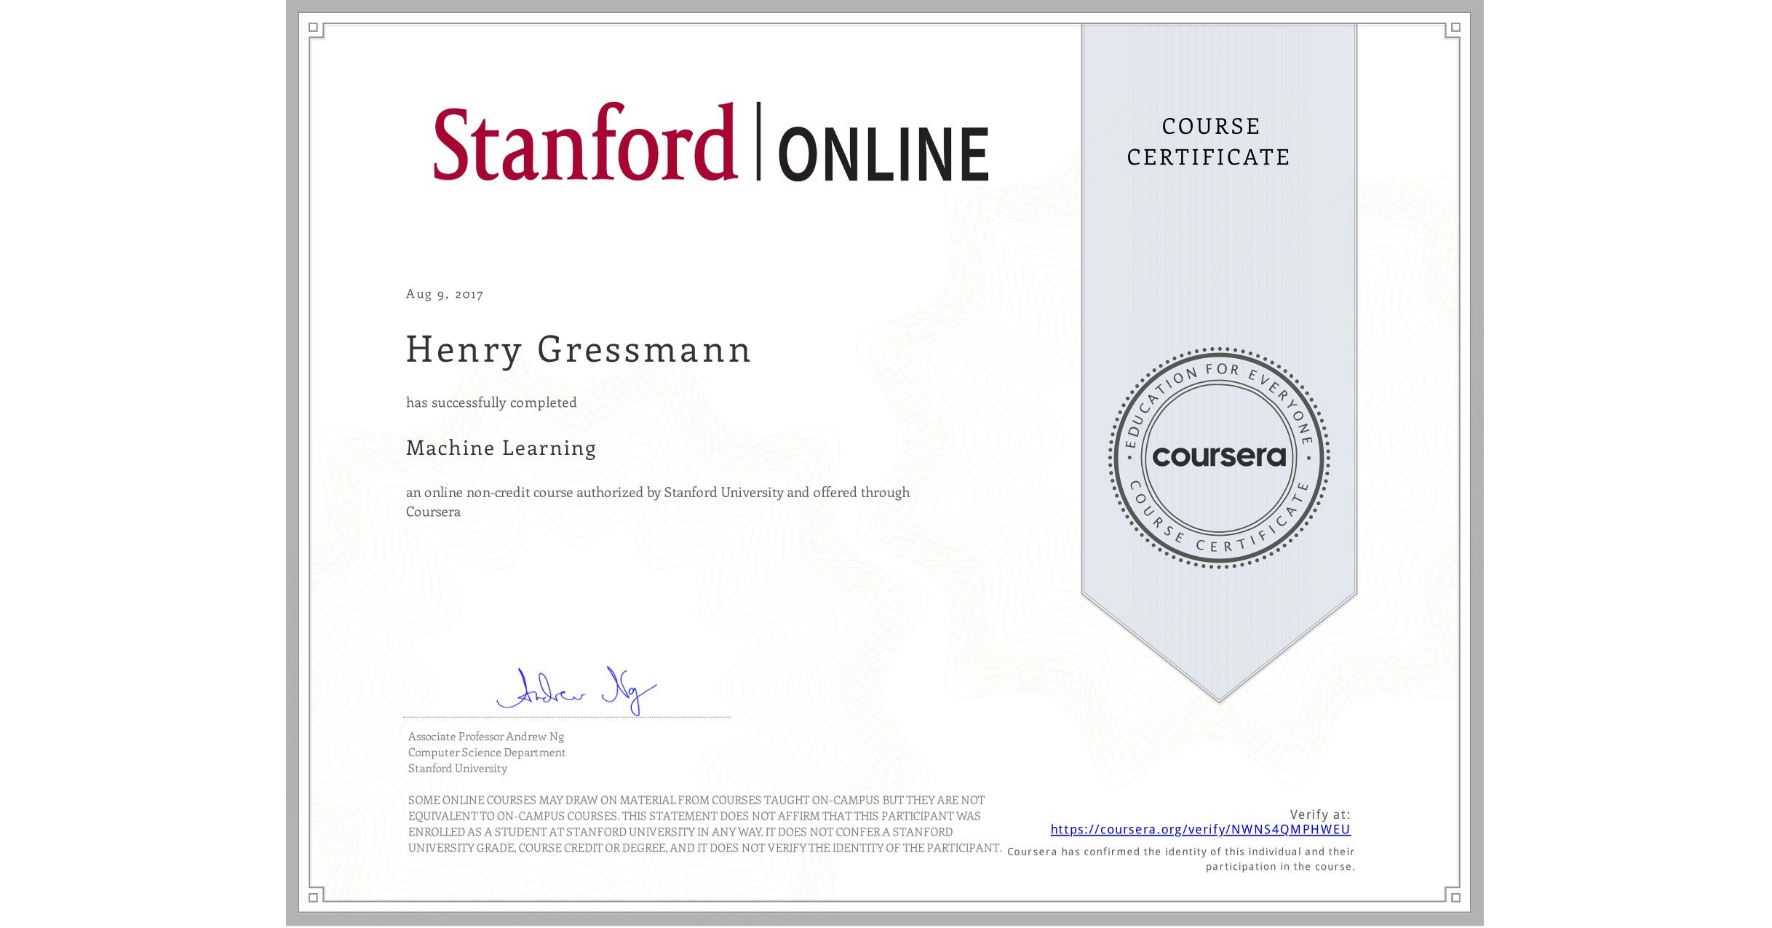 View certificate for Henry Gressmann, Machine Learning, an online non-credit course authorized by Stanford University and offered through Coursera